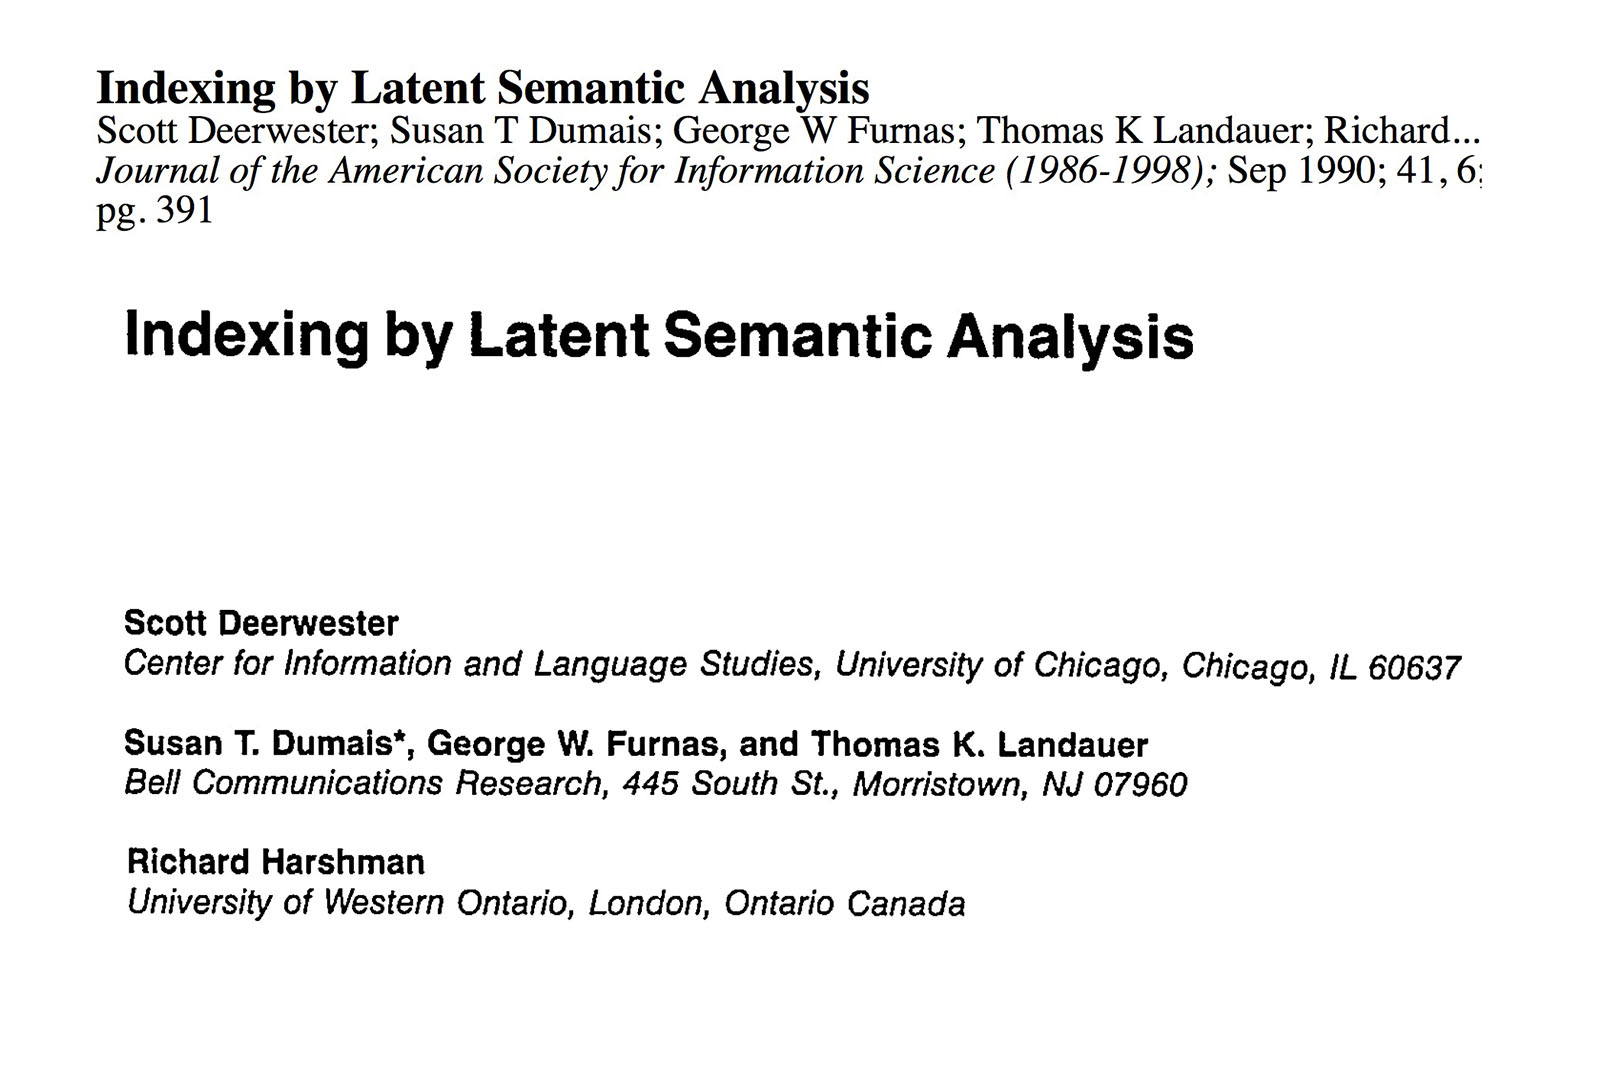 indexing-by-LSI-1990-journal